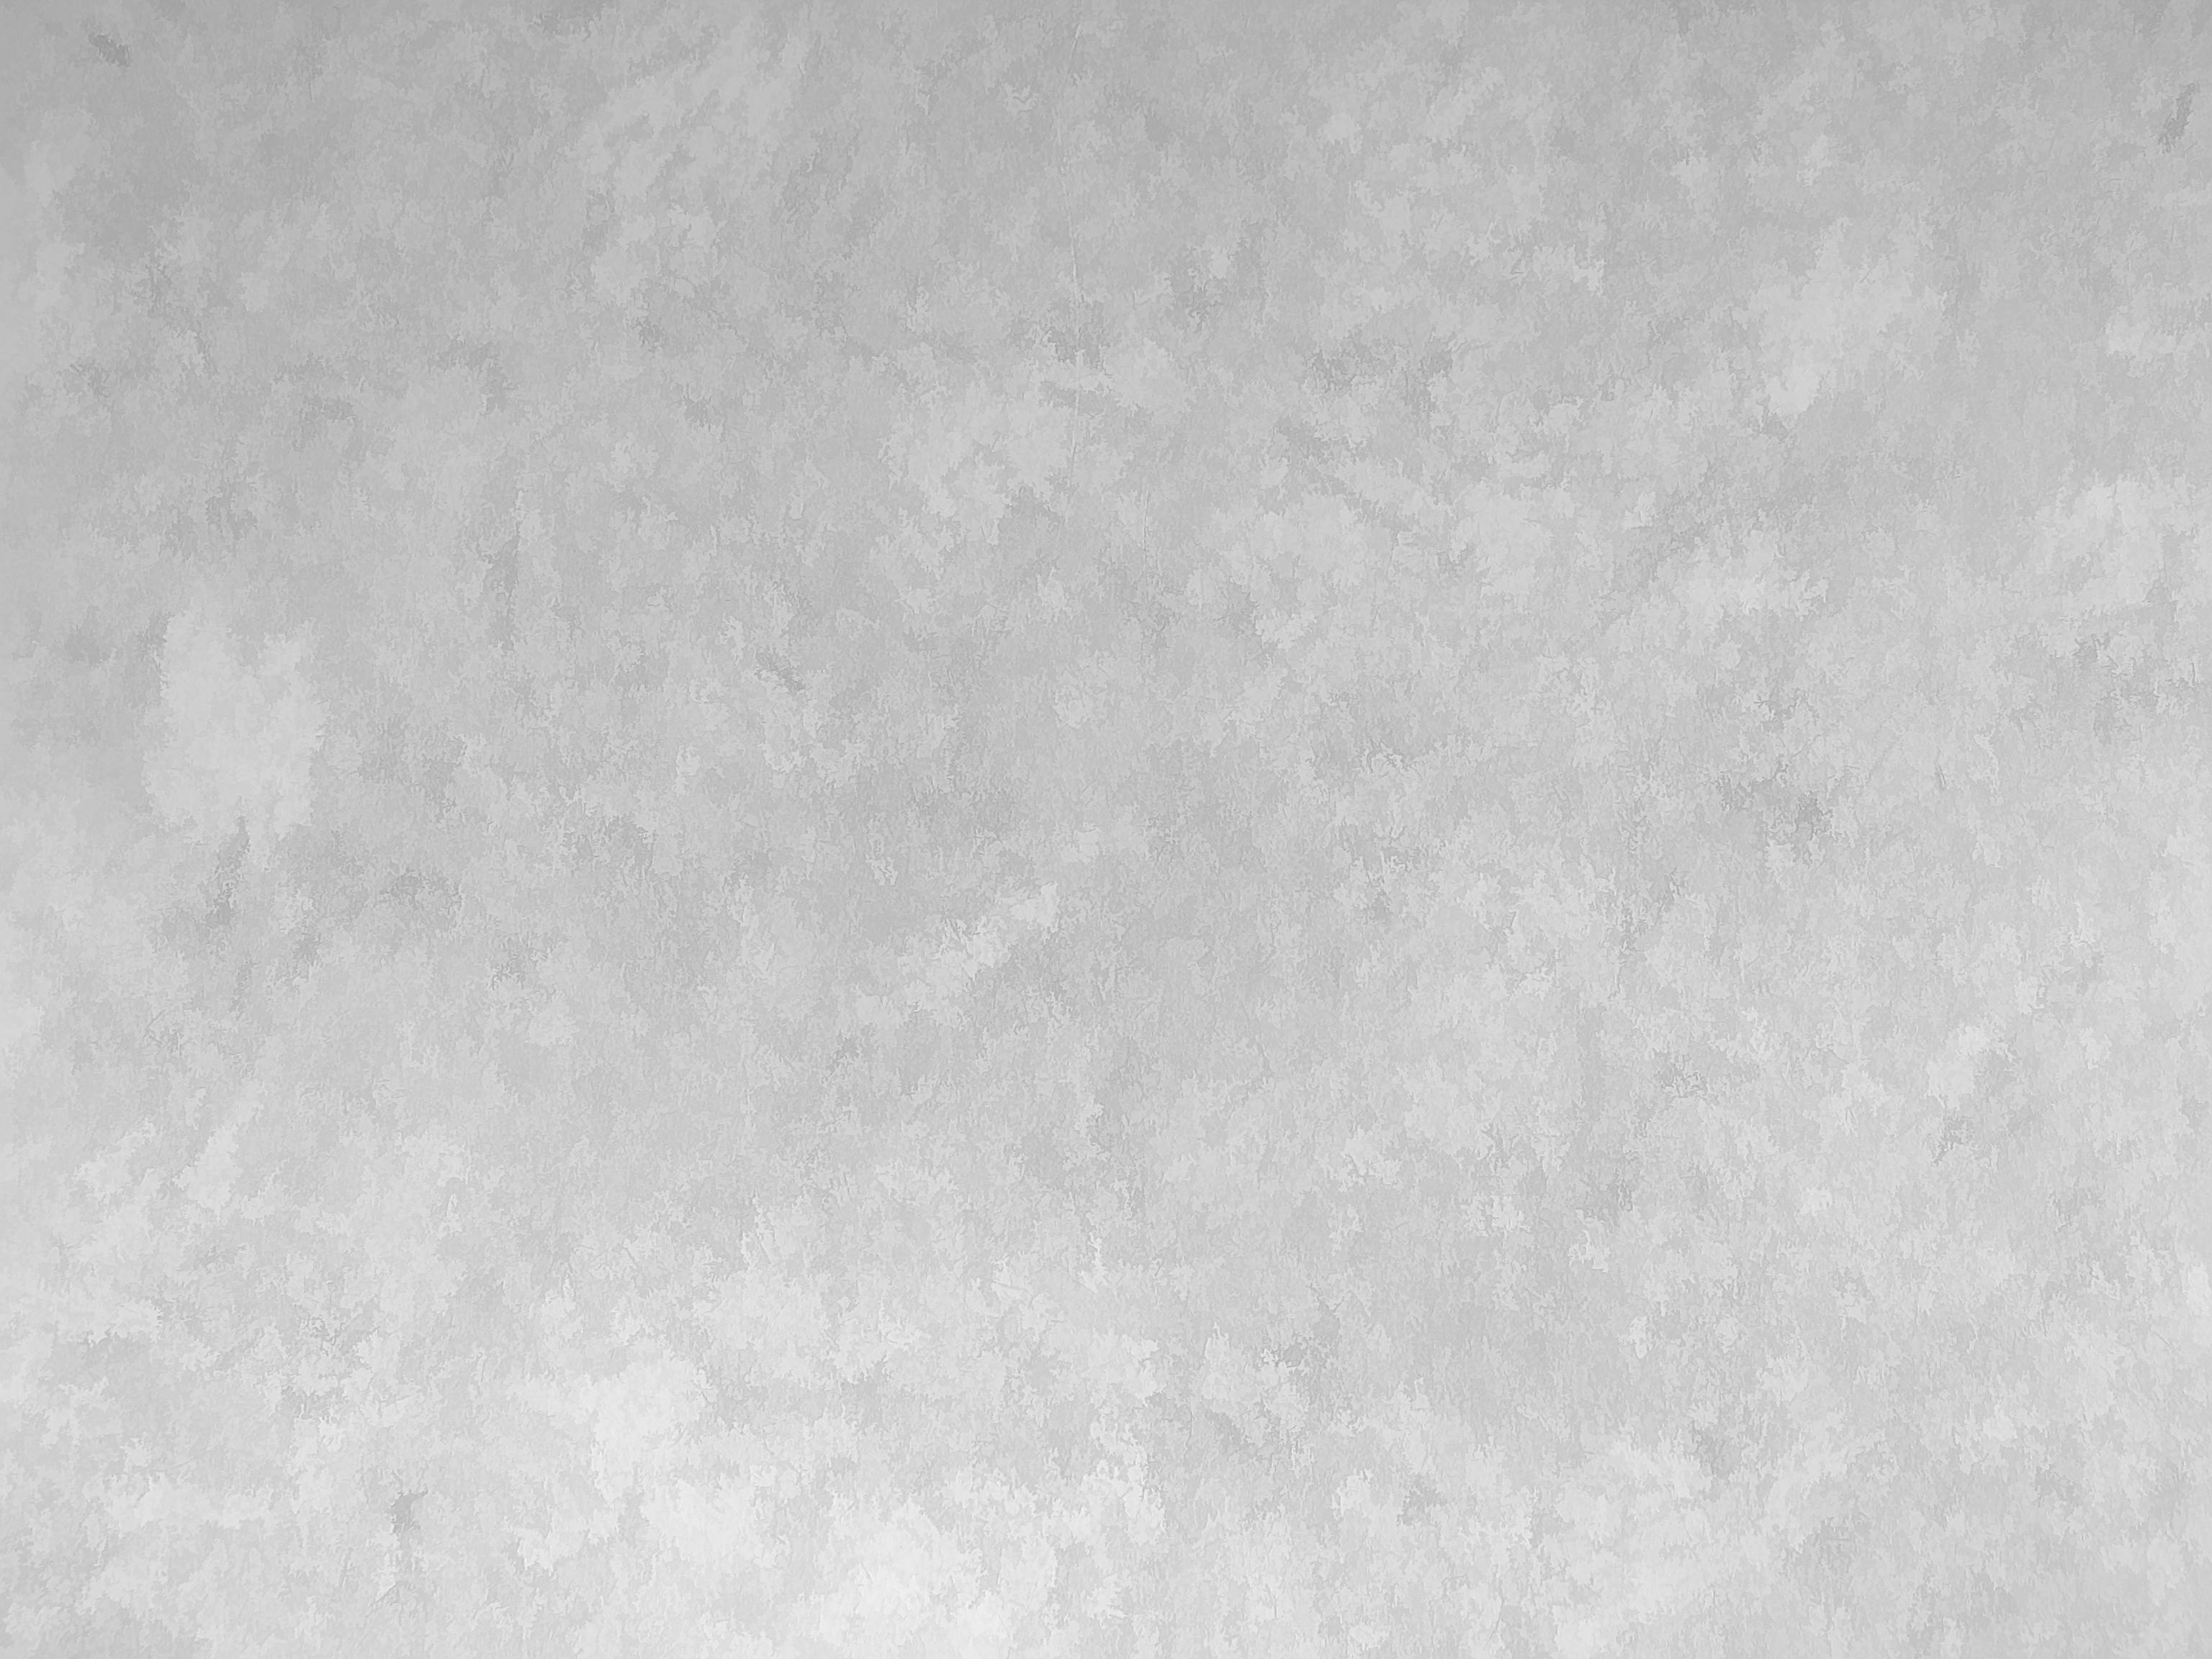 Light Grey background ·① Download free awesome HD ... |Light Grey Wallpaper Hd